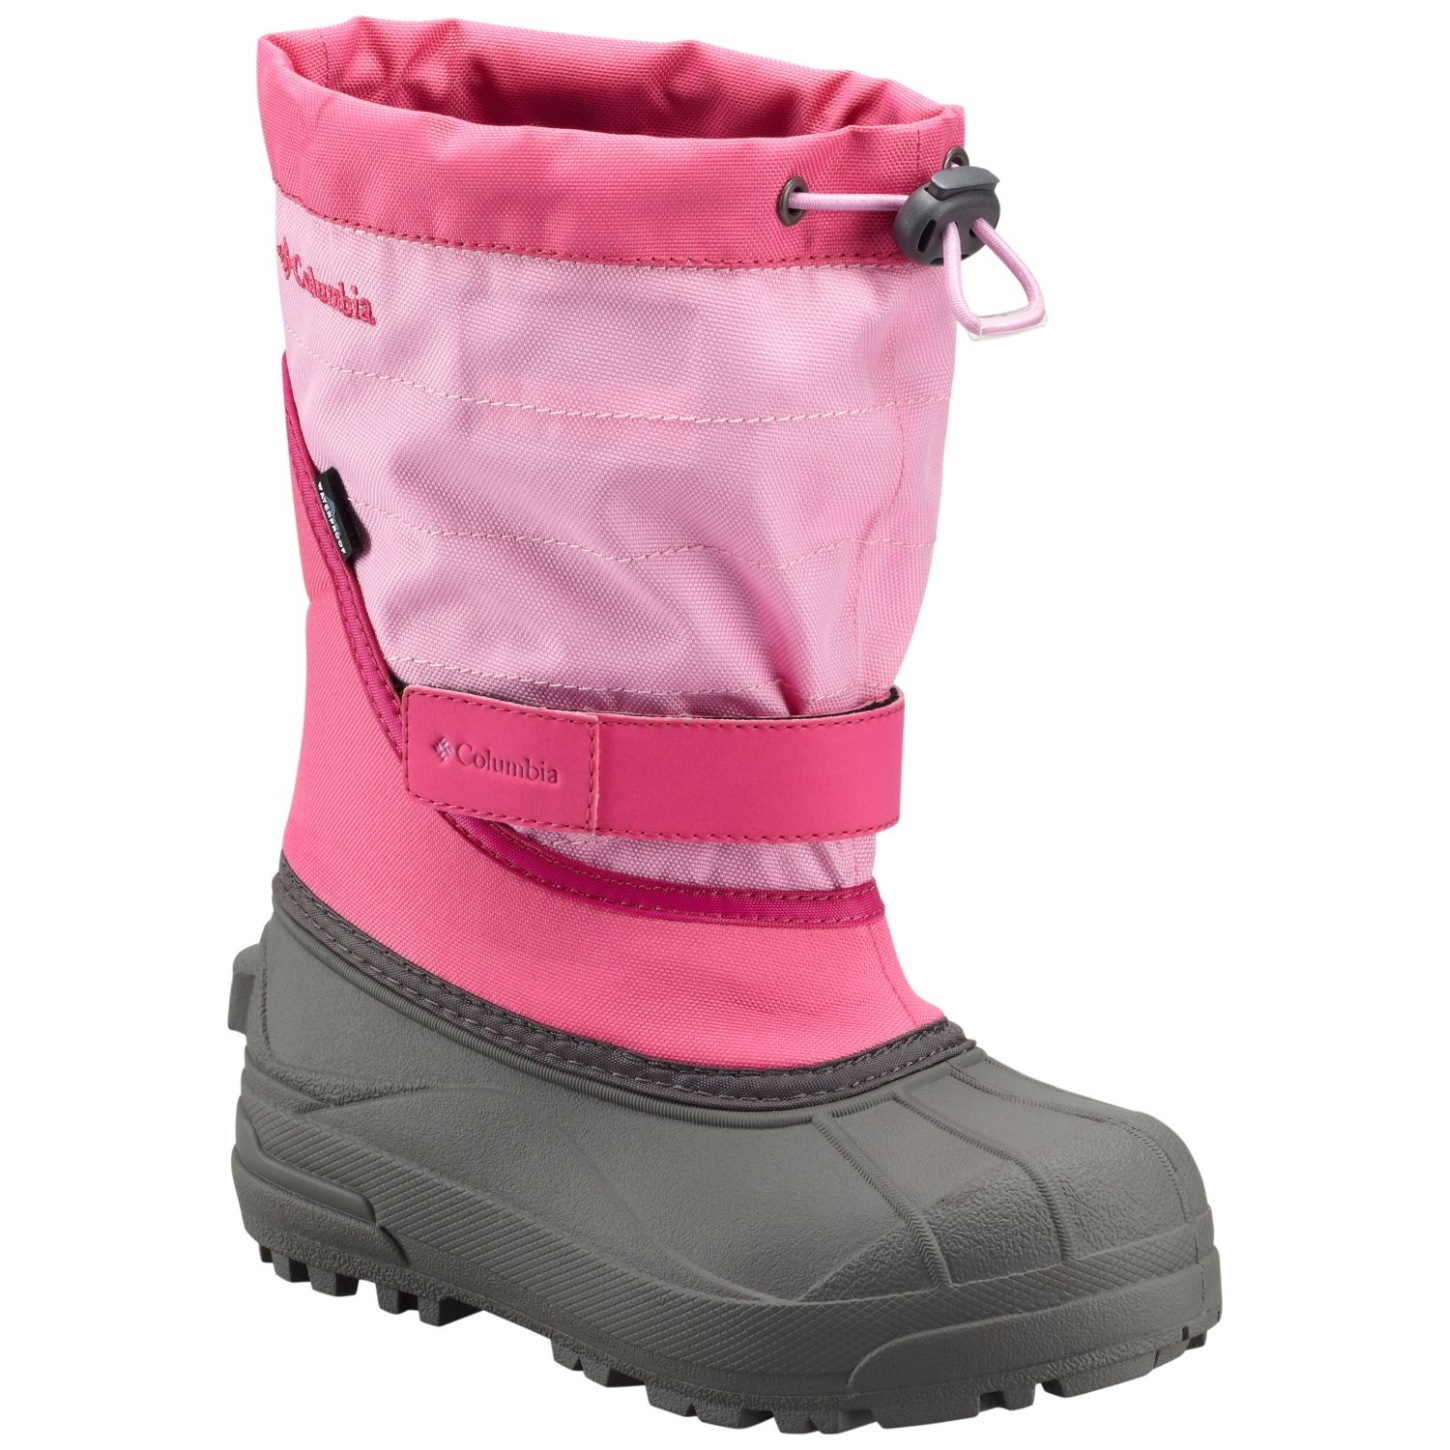 Columbia Girls' Powderbug Plus II Snow Boot Glamour, Orchid-30